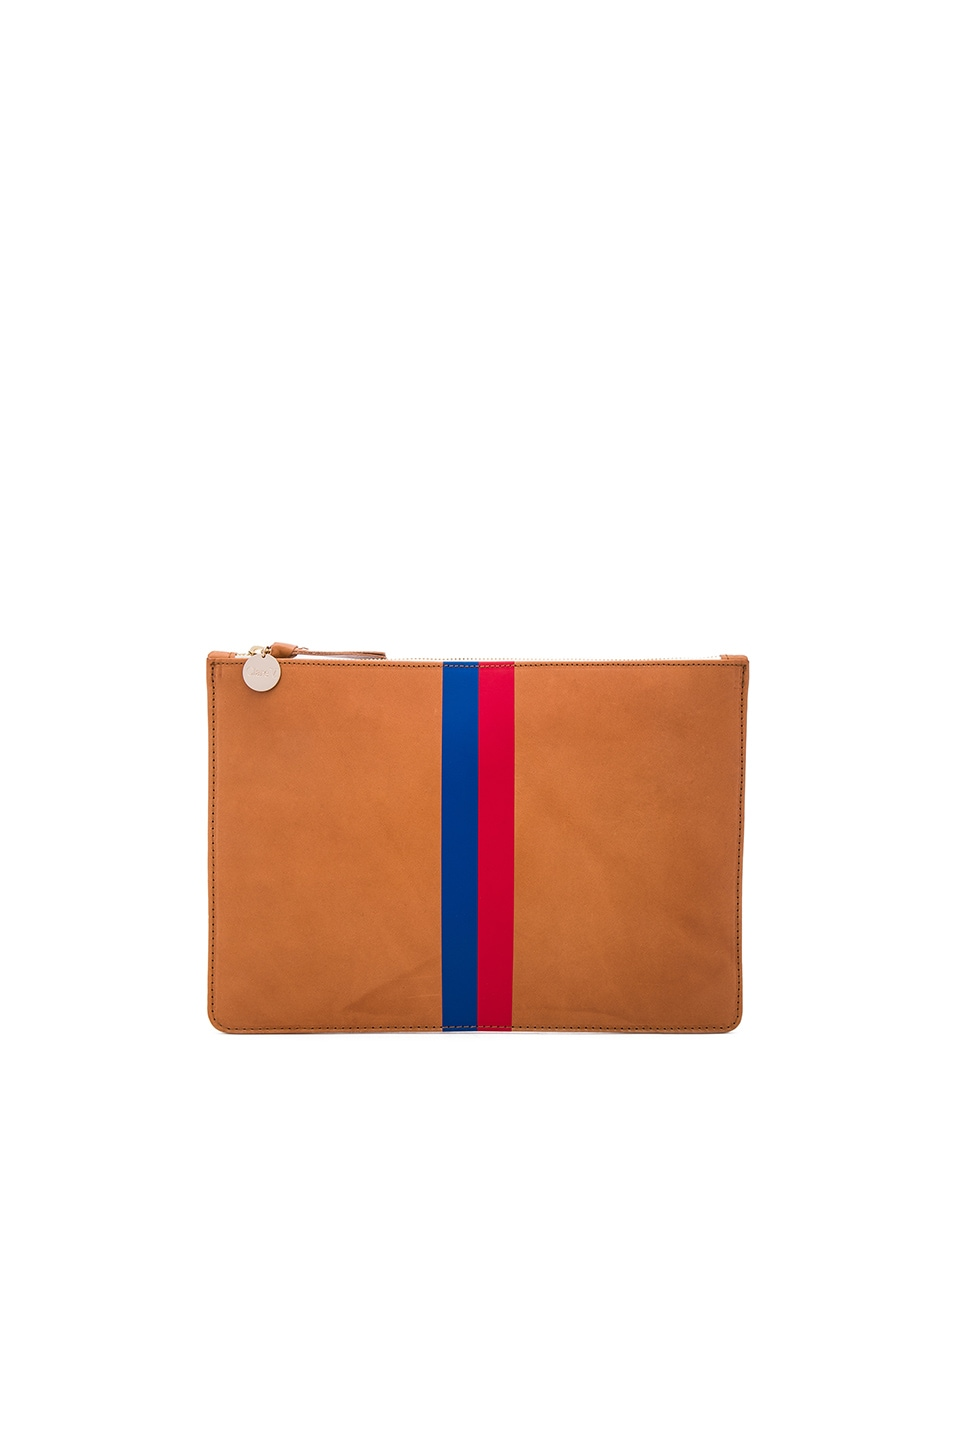 Clare V. Margot Flat Clutch in Cuoio Vachetta, Royal Blue & Red Stripes